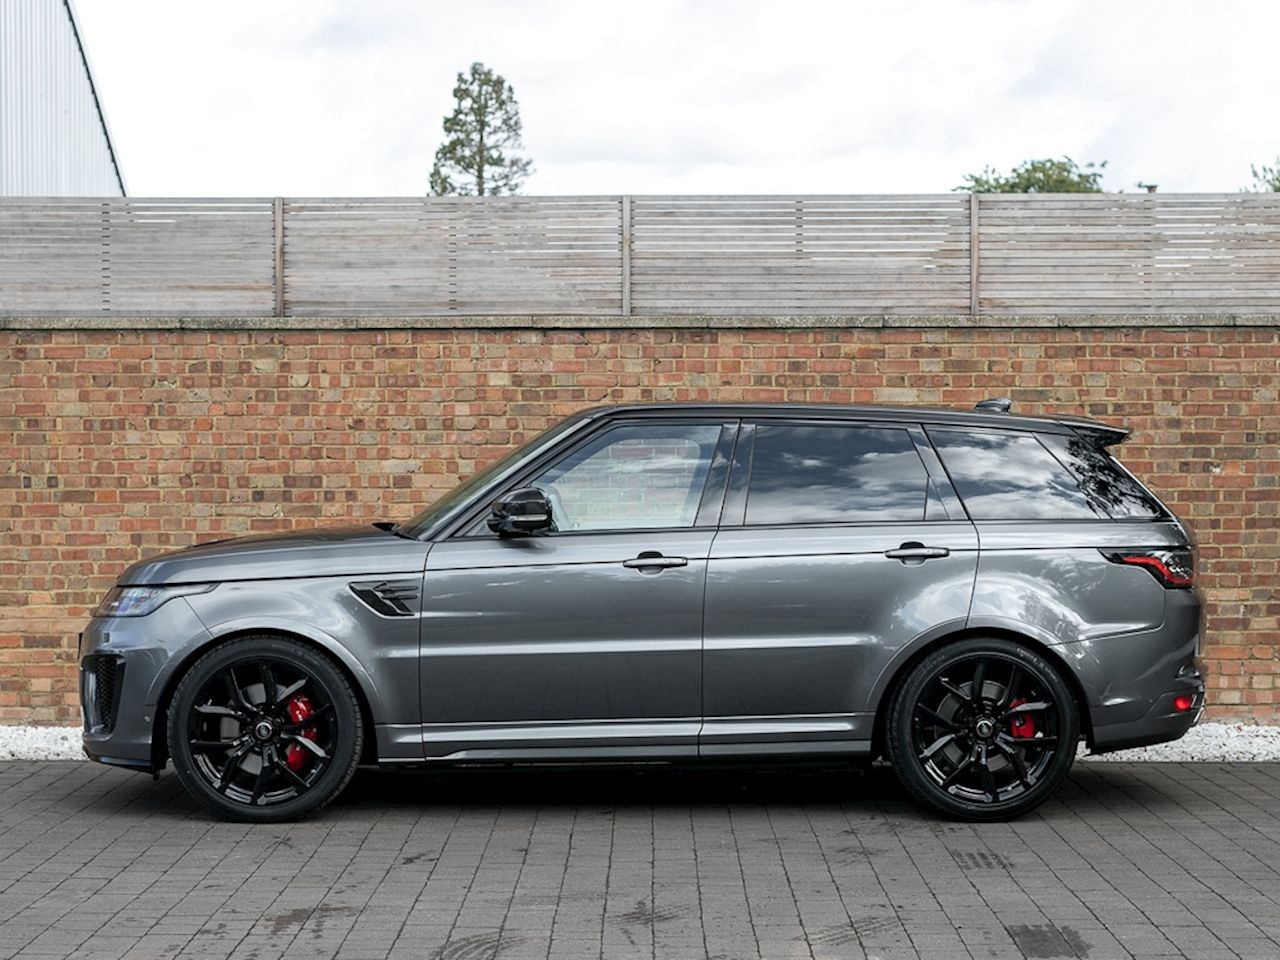 2018 Used Land Rover Range Rover Sport Svr Corris Grey